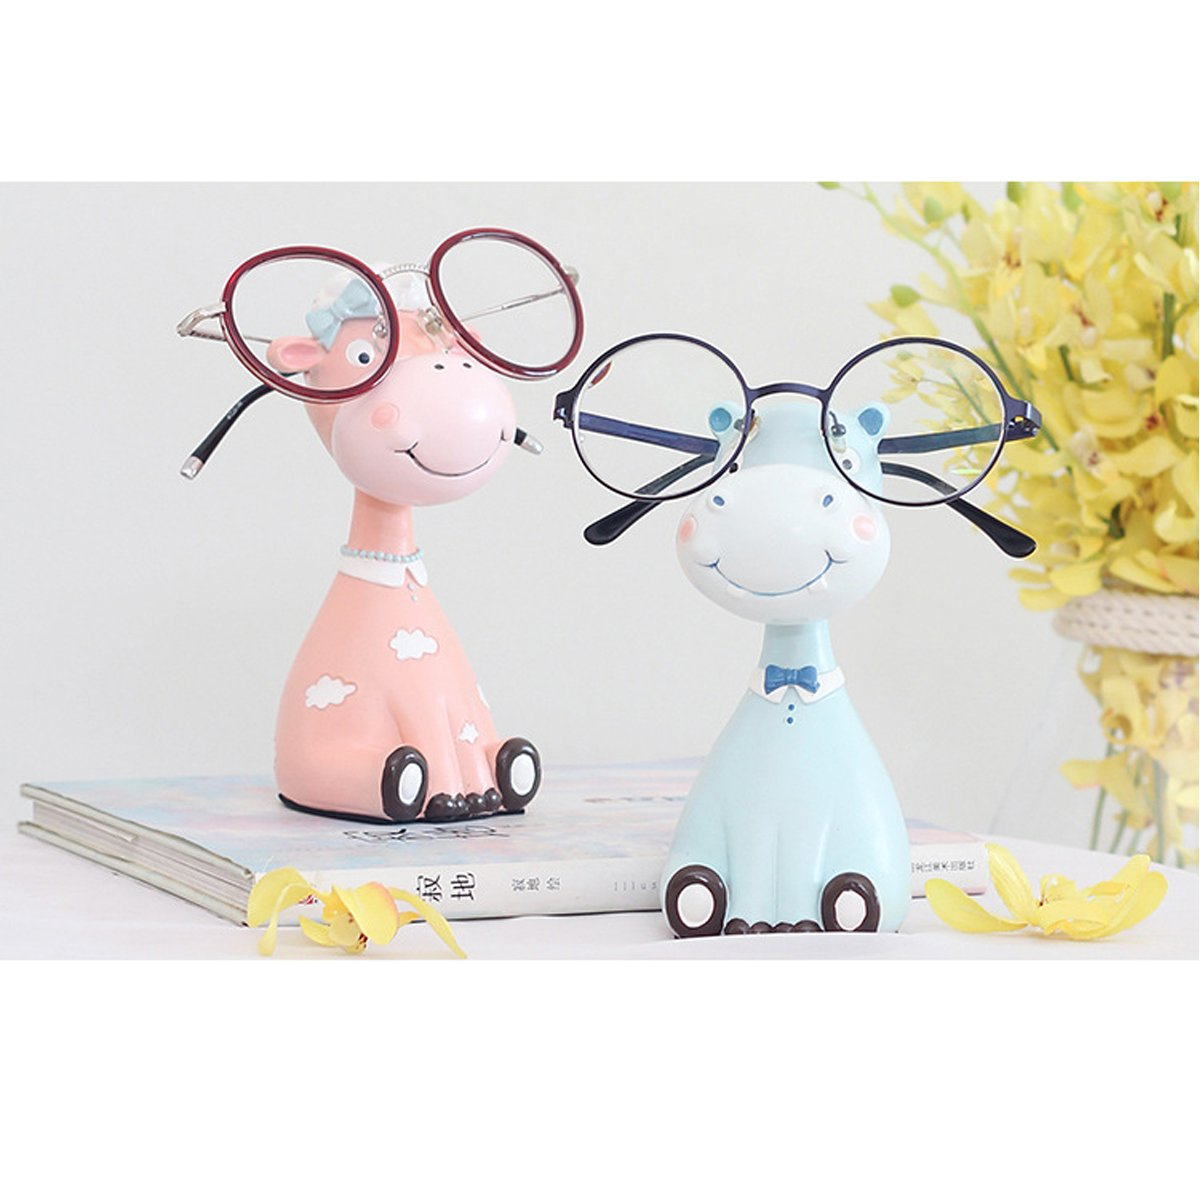 Gift for Christmas or Birthday to Your Loved Ones Adorable Animals Zoo Eyeglass Spectacle in 2 pcs/Eyewear Holder by NaNa (Image #4)